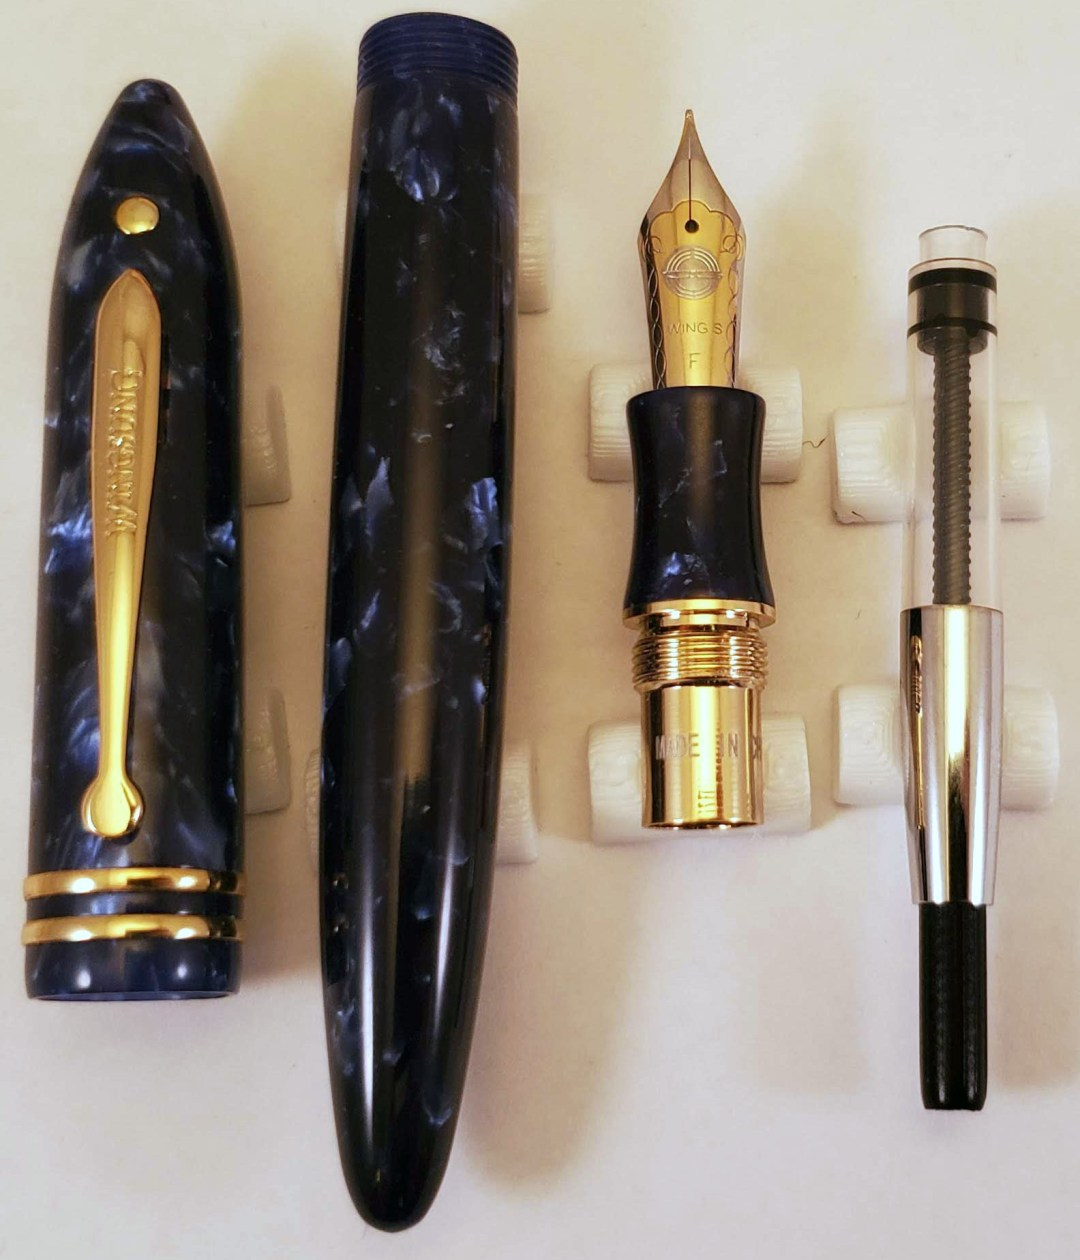 Wing Sung 626 Exploded View showing cap, barrel, section, and converter